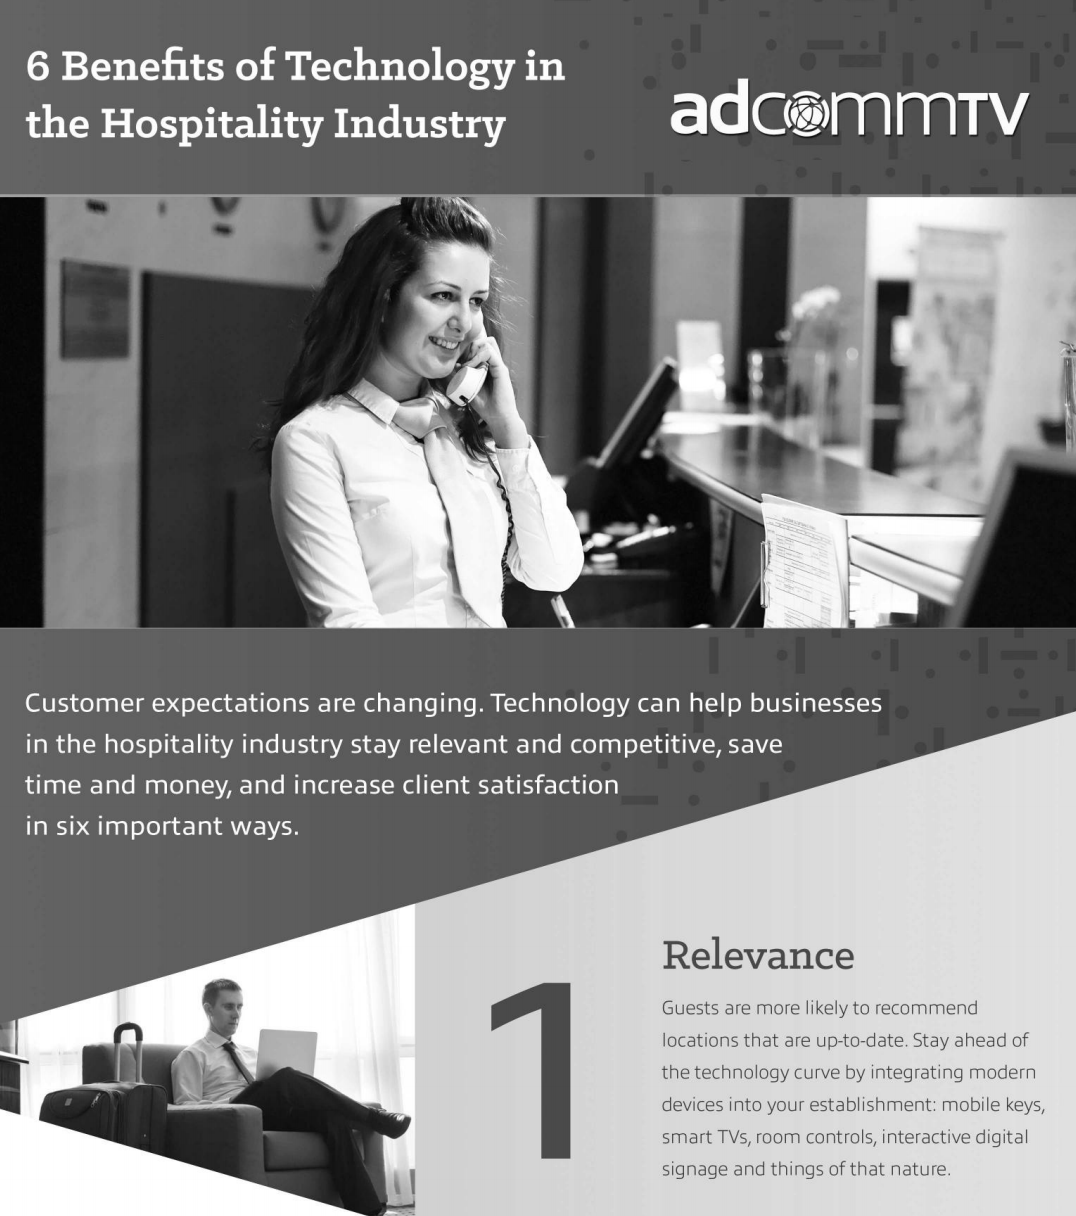 6 Benefits of Technology in the Hospitality Industry